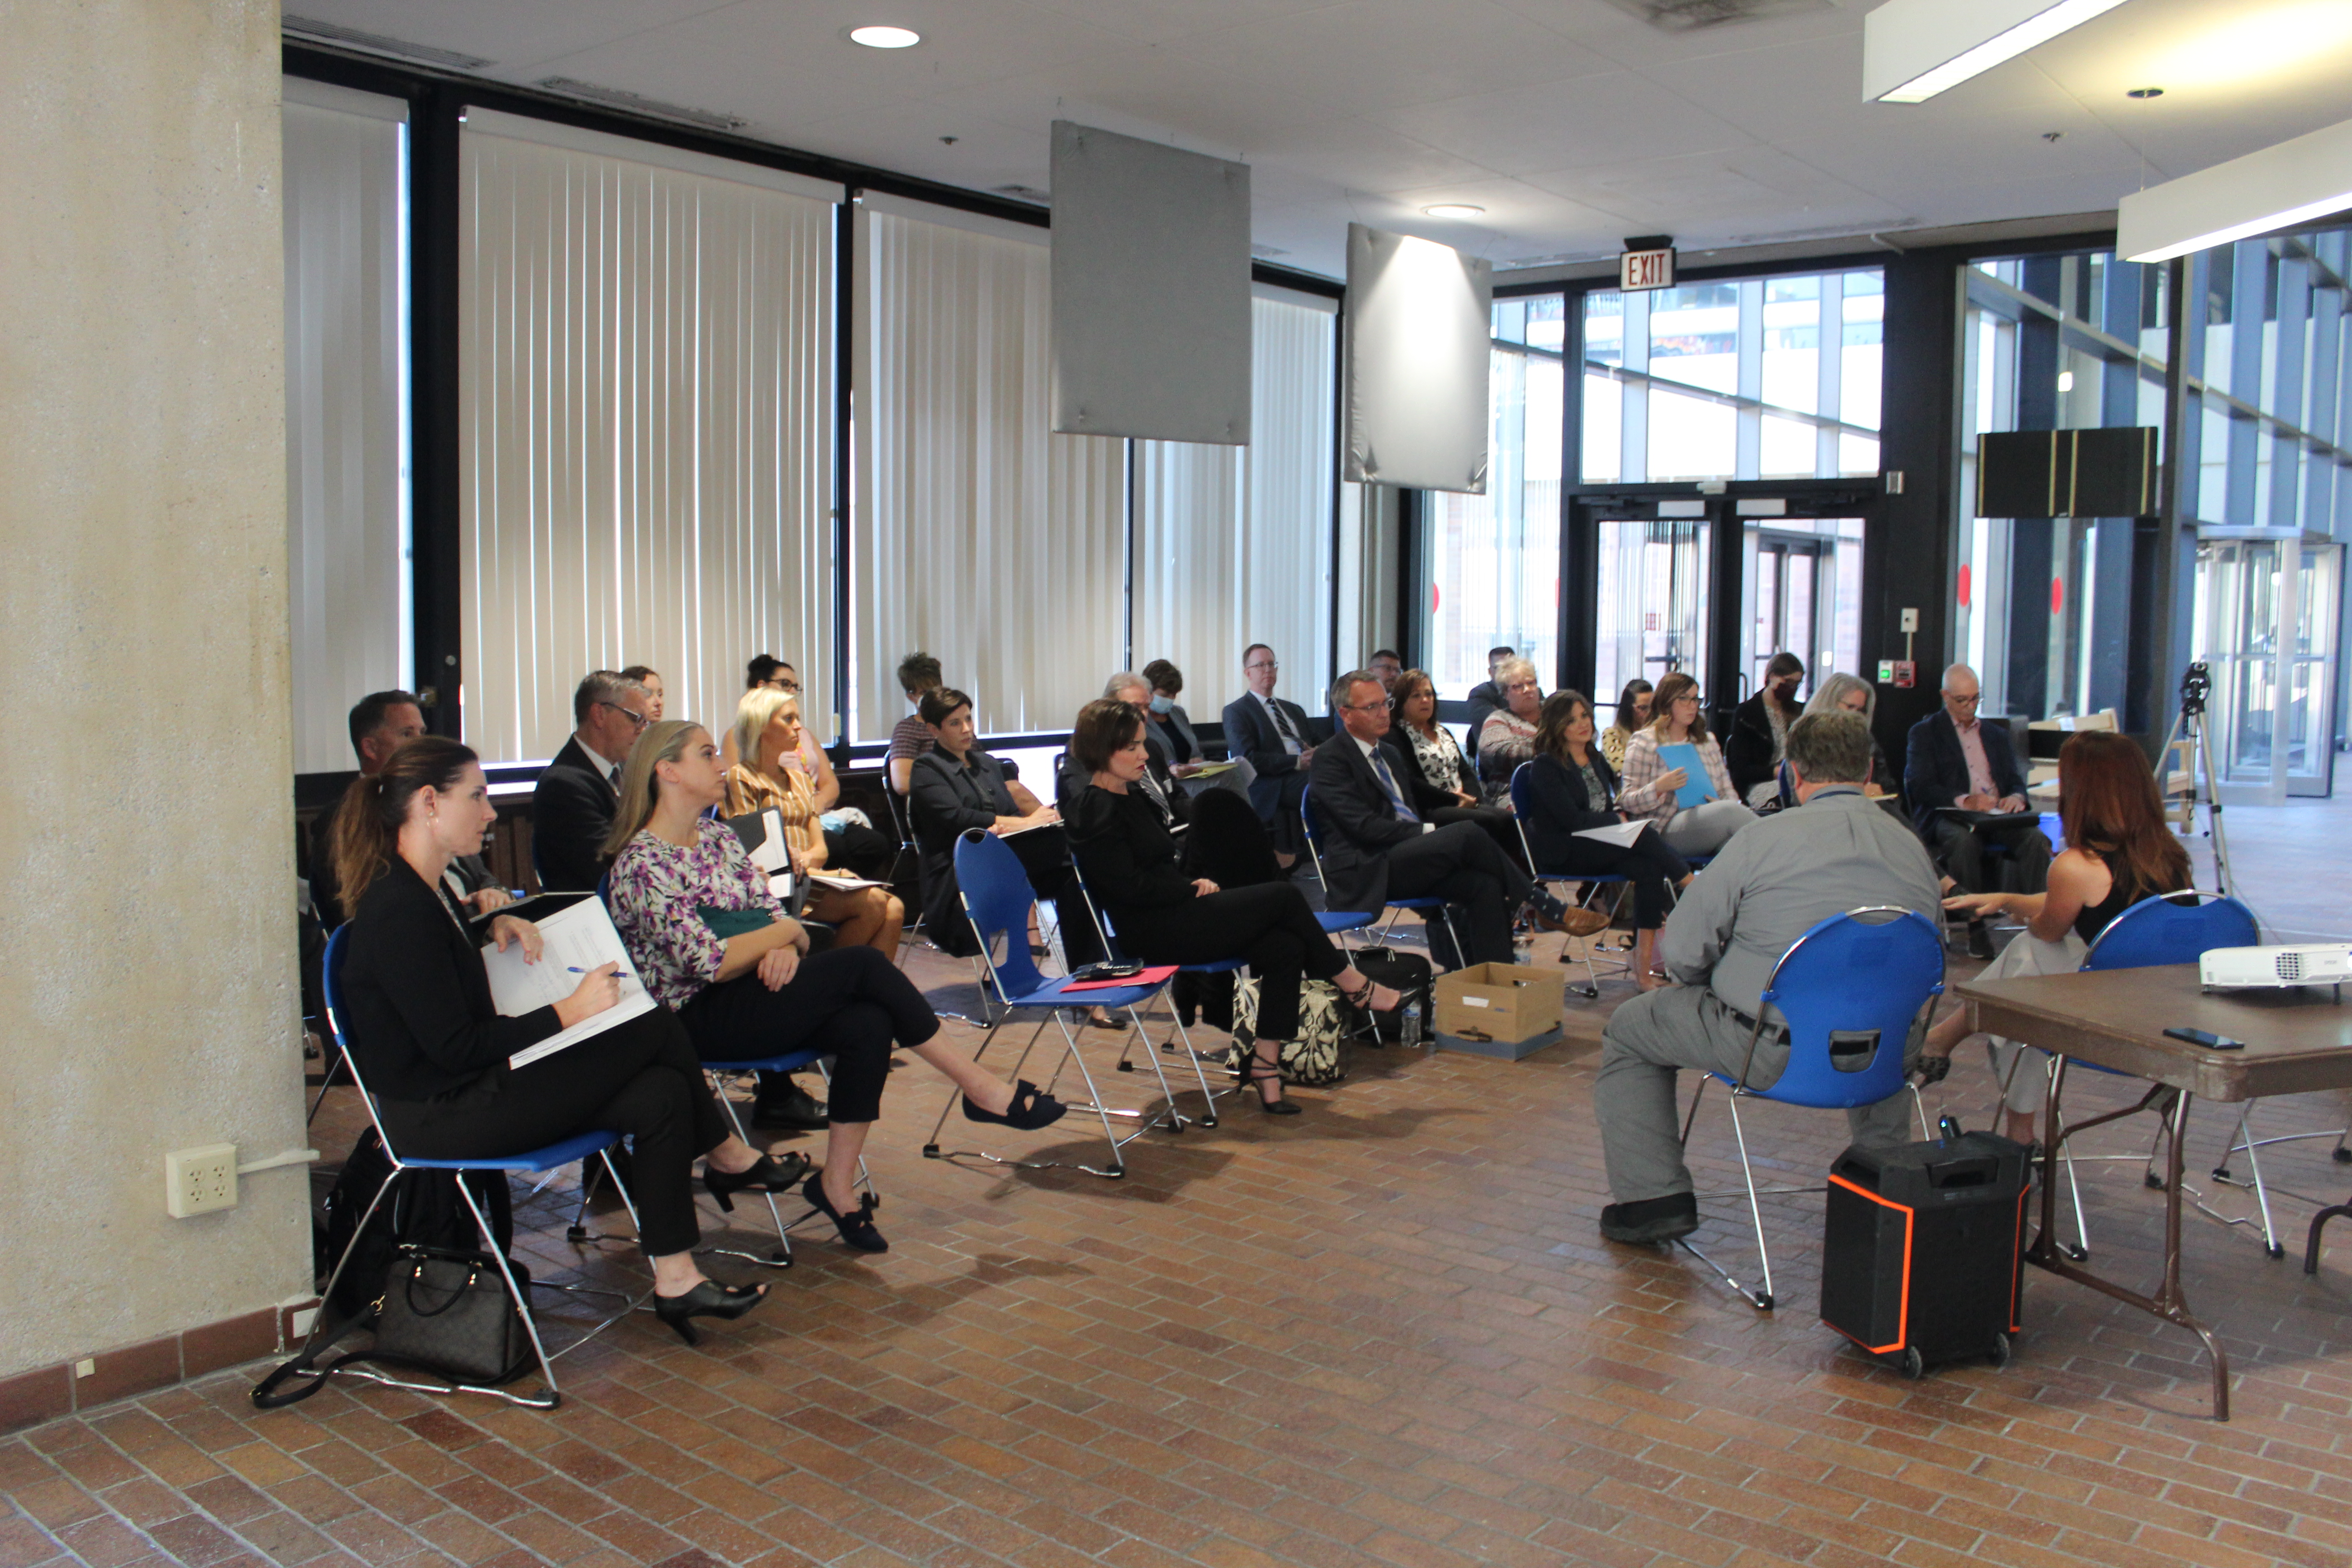 The Omaha Bar Association held a town hall meeting at the Douglas County Courthouse to discuss the future of court reporting in Nebraska, Sept. 22, 2021. (David Golbitz/Daily Record)